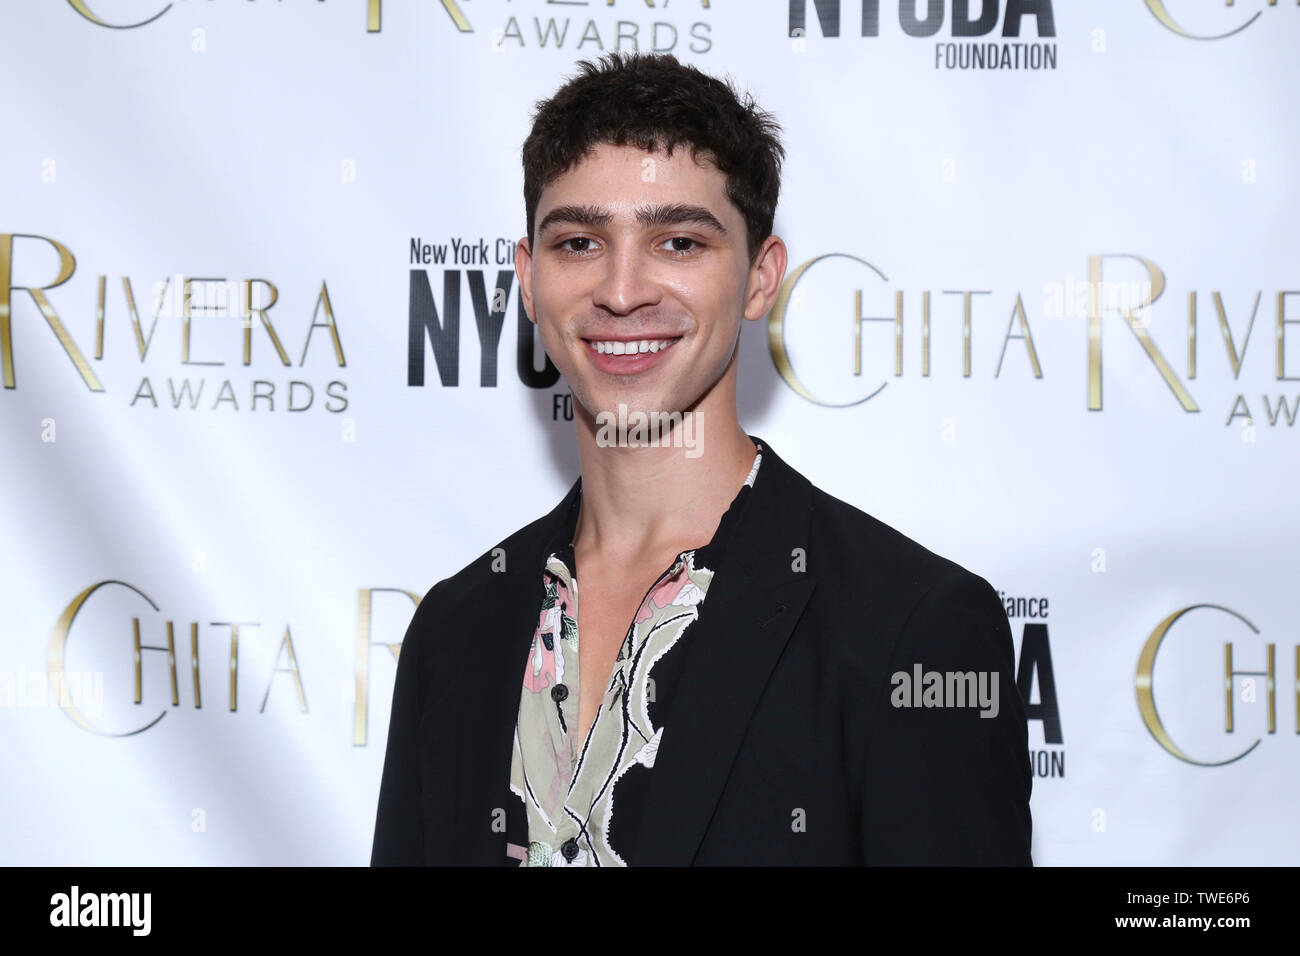 The 2019 Chita Rivera Awards, celebrating dance and choreographic excellence, held at 566 LaGuardia Place - Arrivals. Featuring: Isaac Cole Powell Where: New York, New York, United States When: 20 May 2019 Credit: Joseph Marzullo/WENN.com - Stock Image